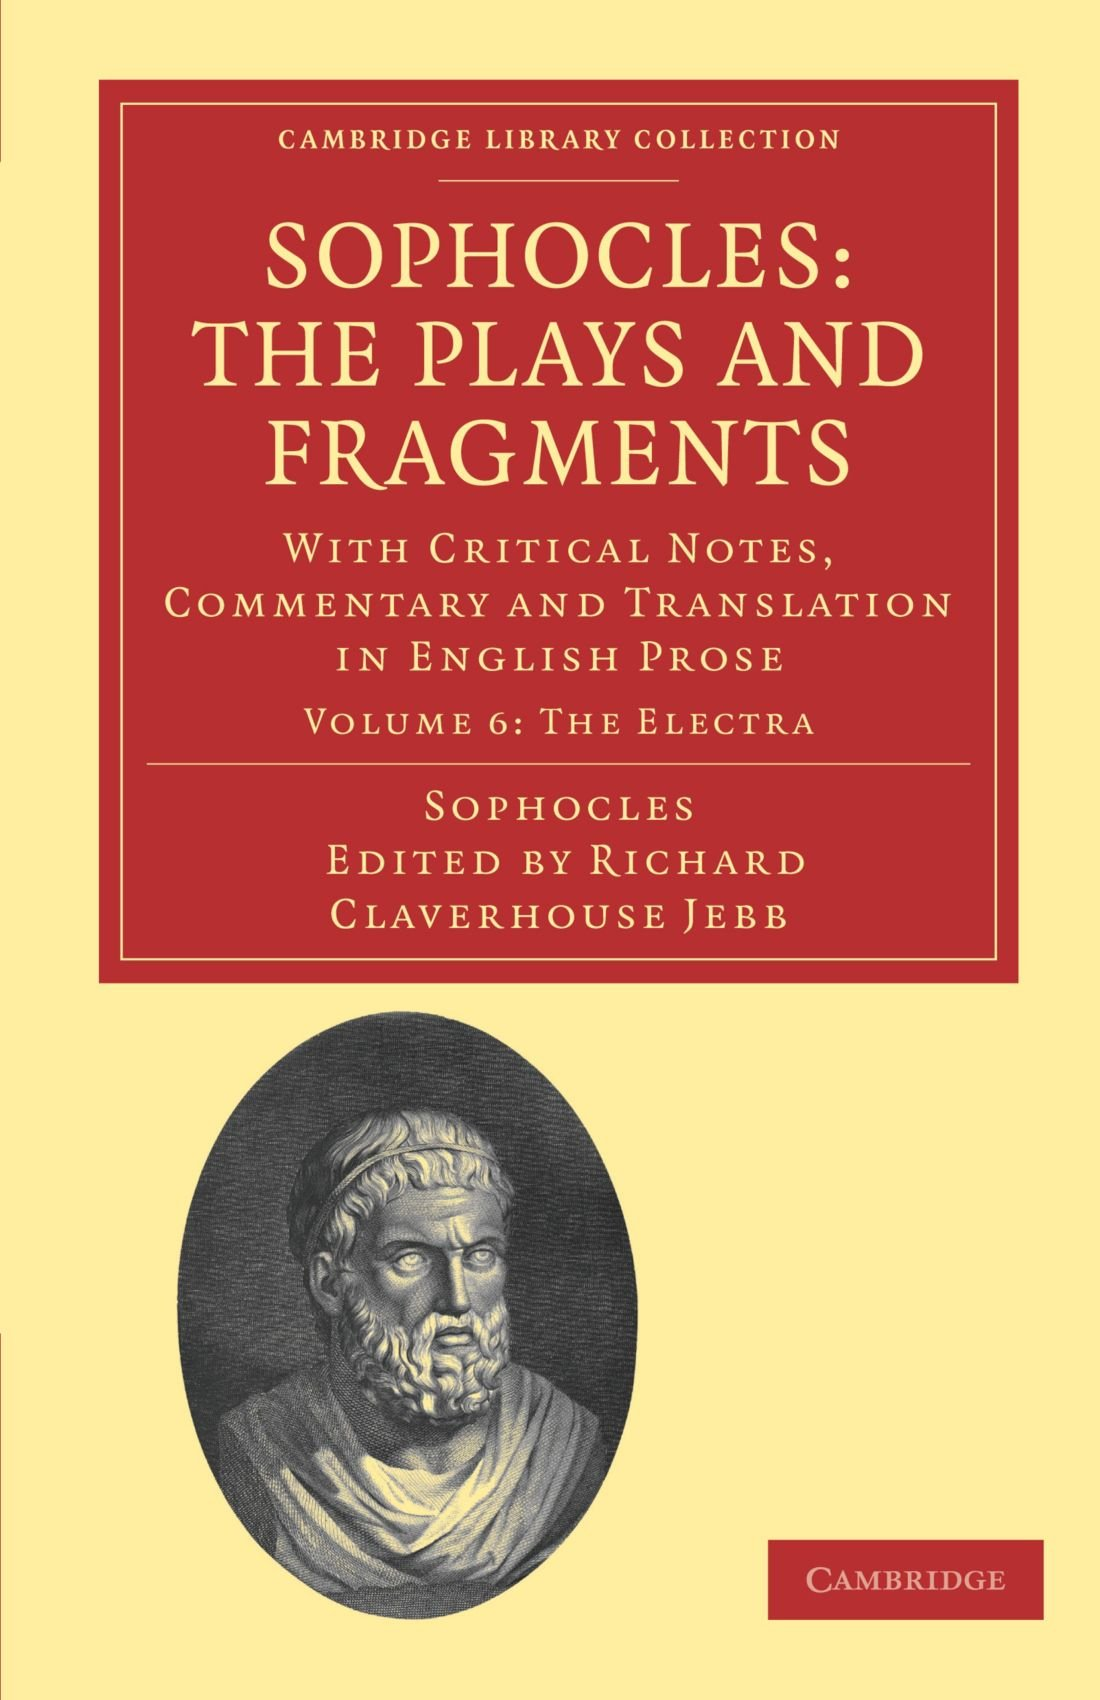 Download Sophocles: The Plays and Fragments: With Critical Notes, Commentary and Translation in English Prose (Cambridge Library Collection - Classics) PDF